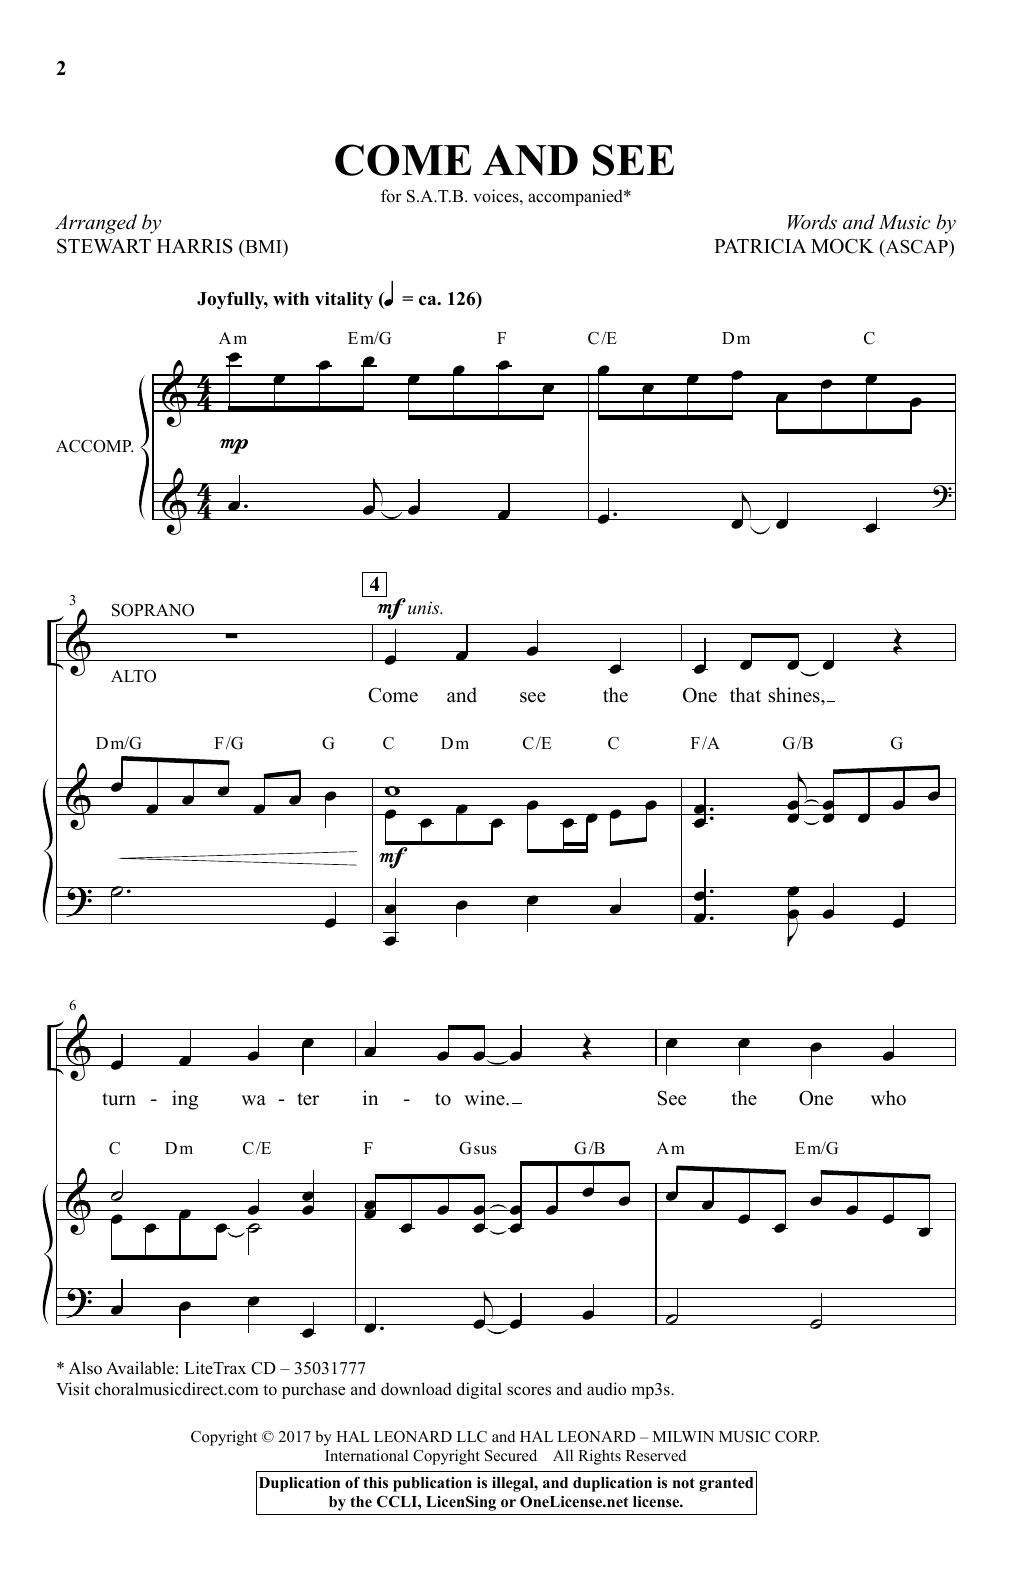 Stewart Harris Come And See sheet music notes and chords. Download Printable PDF.